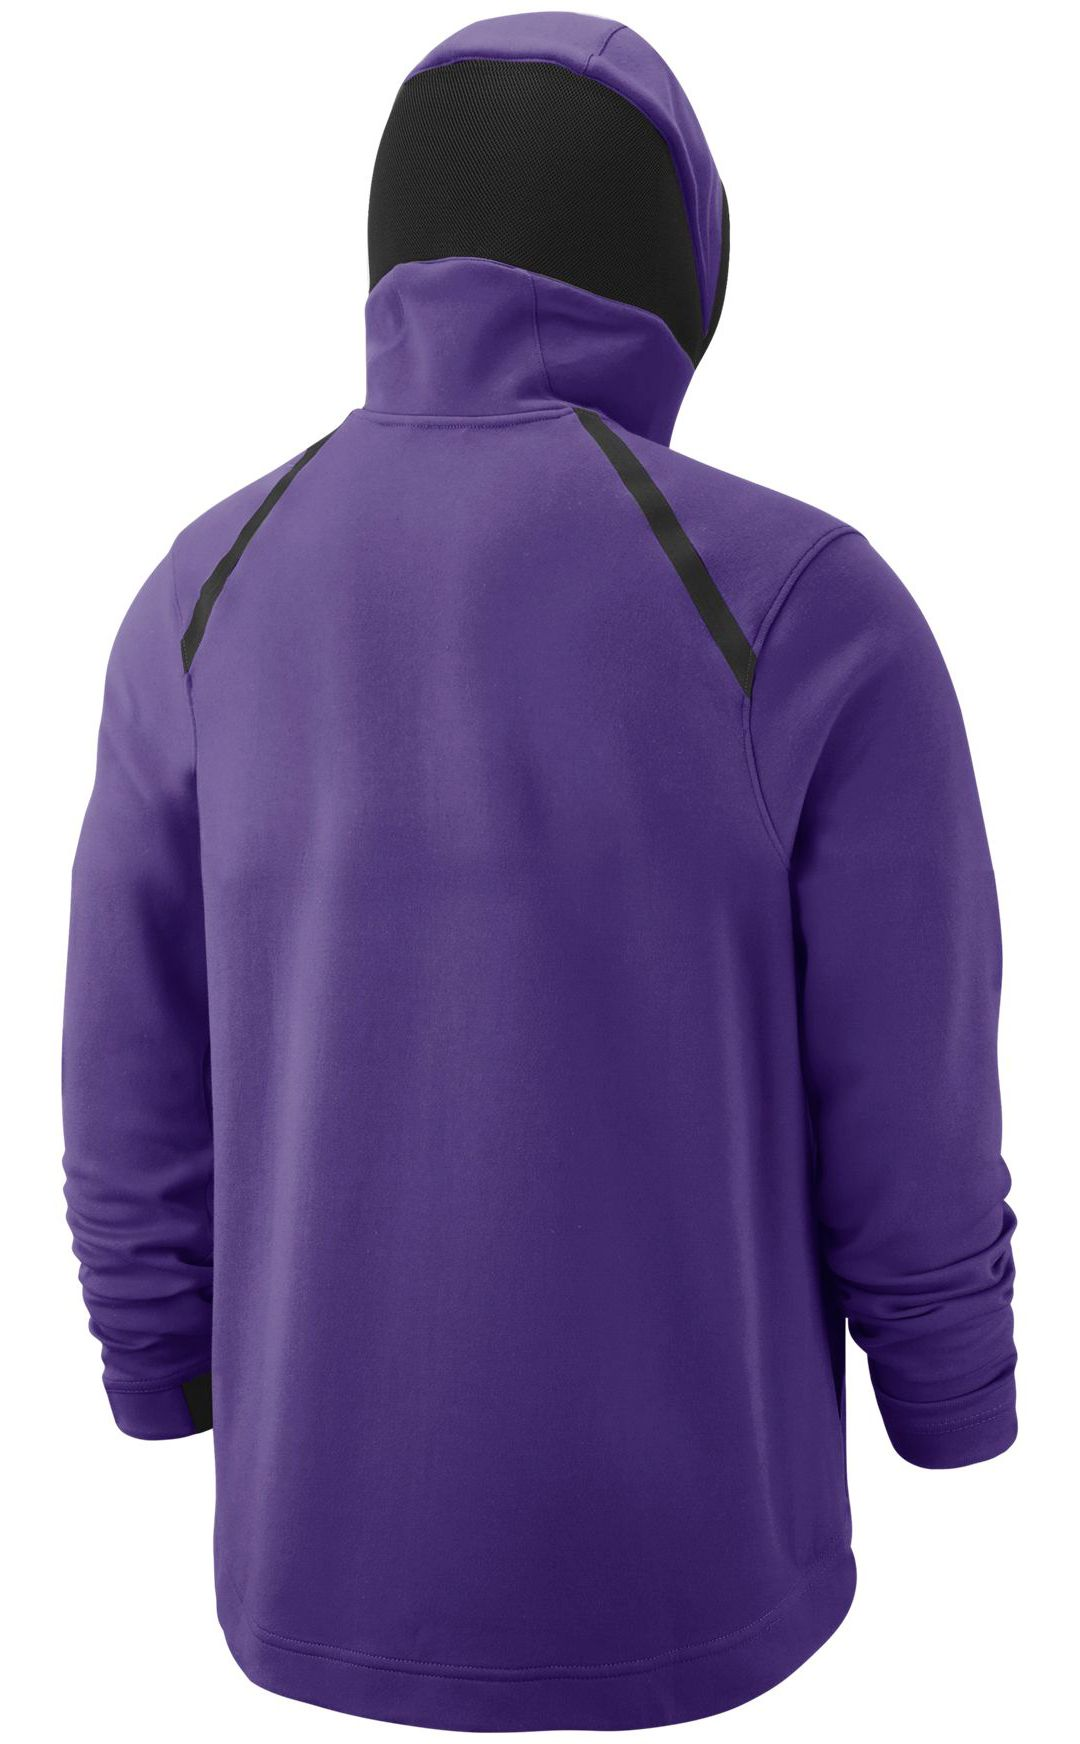 brand new 67434 c668a Nike Men's Los Angeles Lakers On-Court Dri-FIT Showtime Full-Zip Hoodie